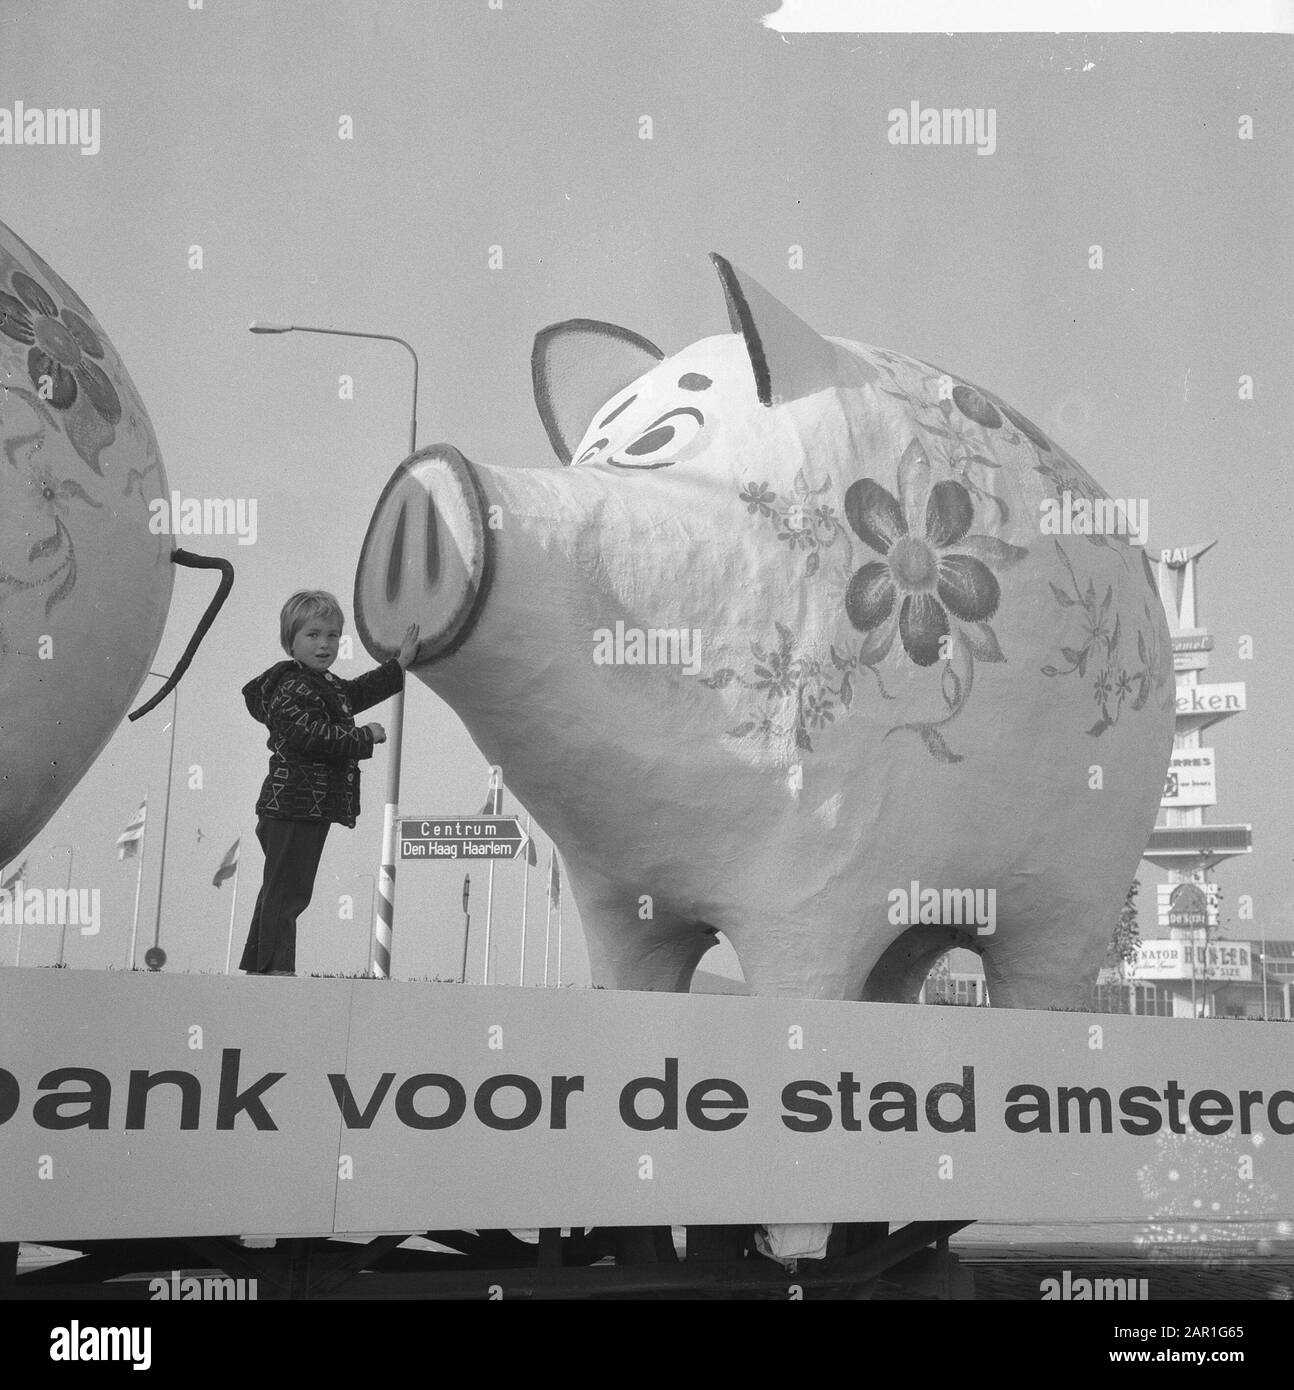 World Savings Day Action Two Giant Piggy Banks On Trailer With The Text Savings Bank For The City Of Amsterdam Child Standing Next To The Piggy Bank Date 25 October 1965 Location